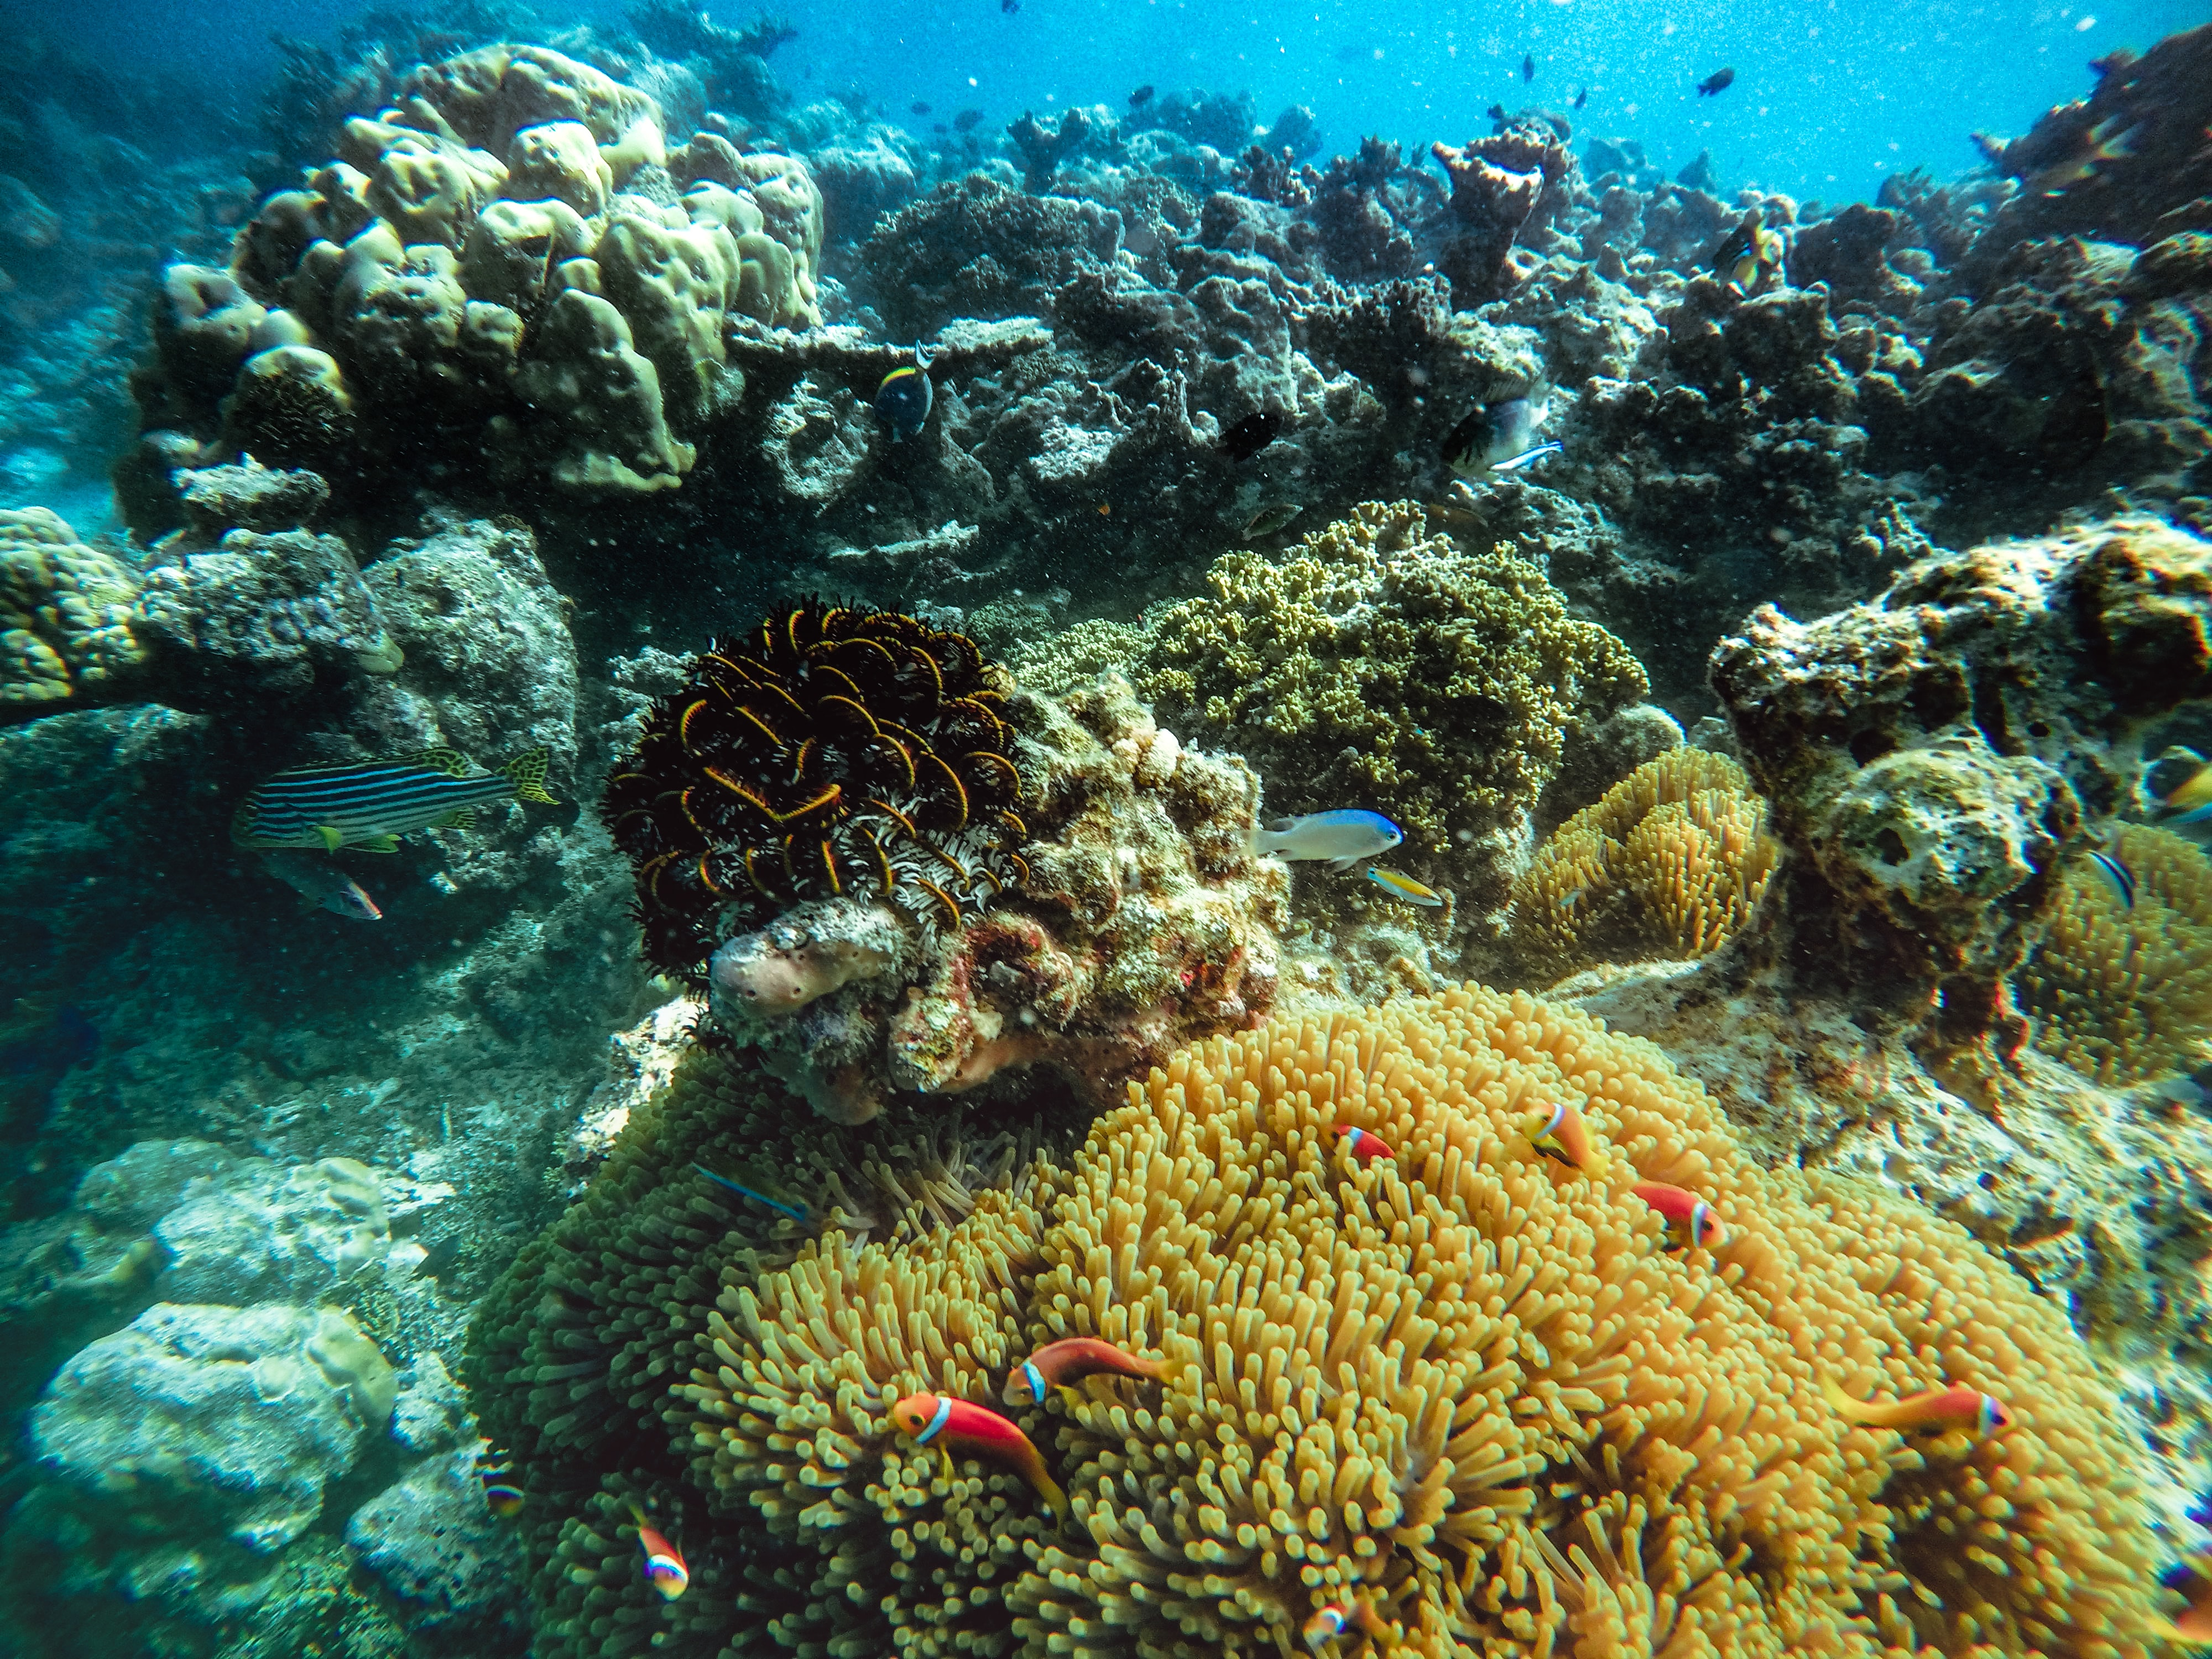 Coral reefs in the Maldives